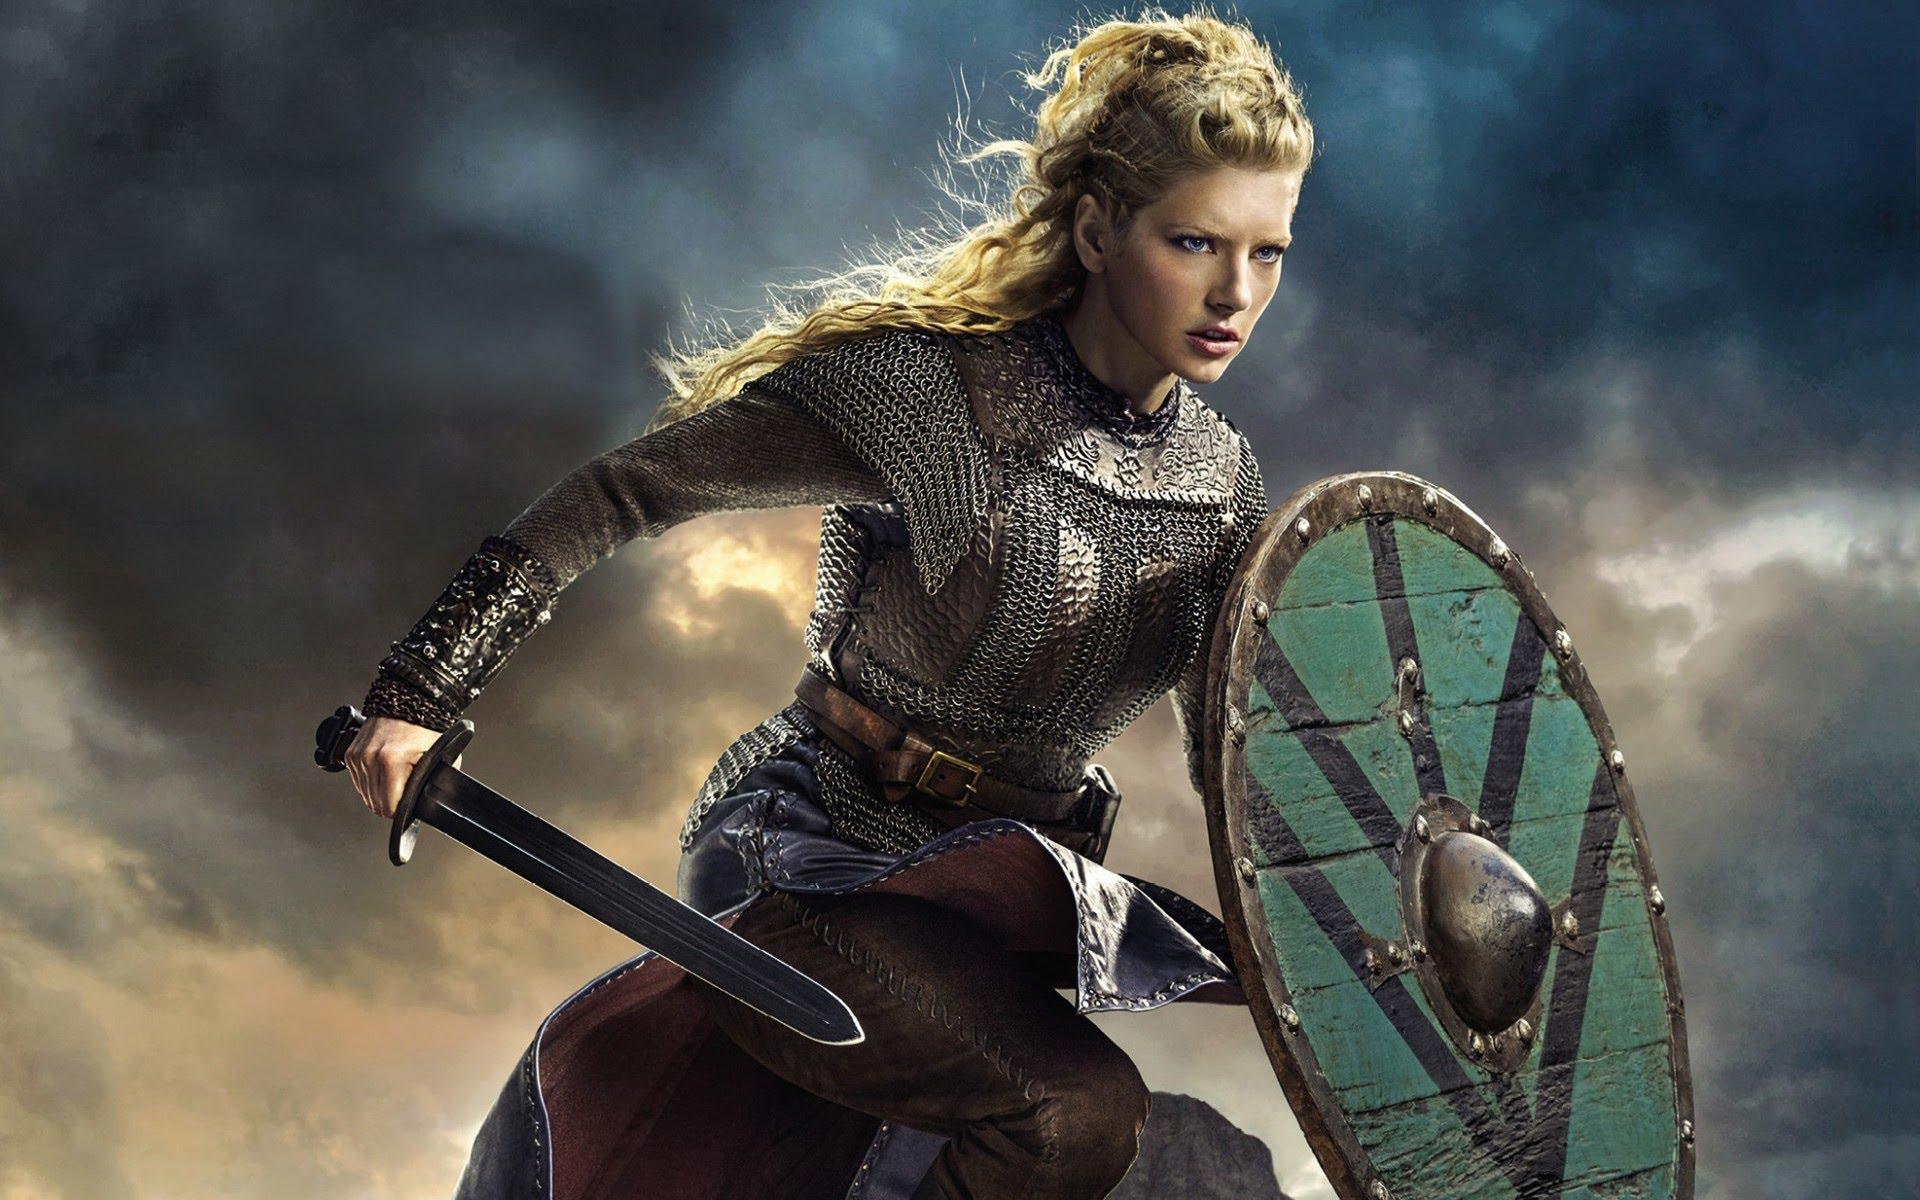 Lagertha the Shieldmaiden, Ragnar Lothbrok's Wife ...